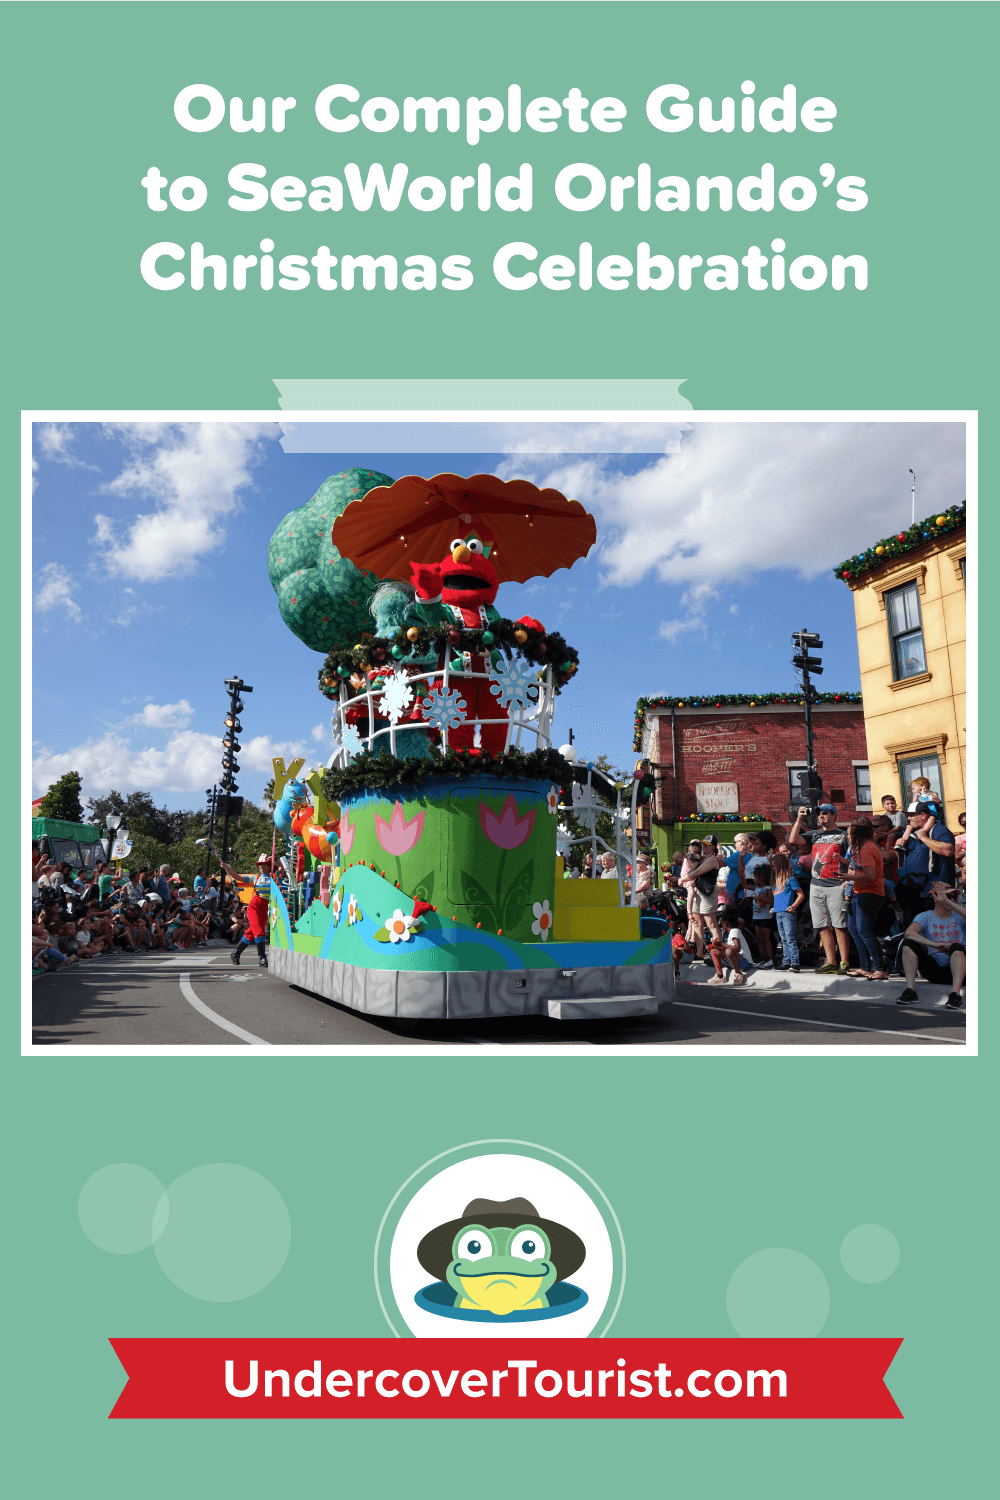 Seaworld Christmas Celebration Orlando Dates 2020 Our Complete Guide to SeaWorld Orlando's Christmas Celebration